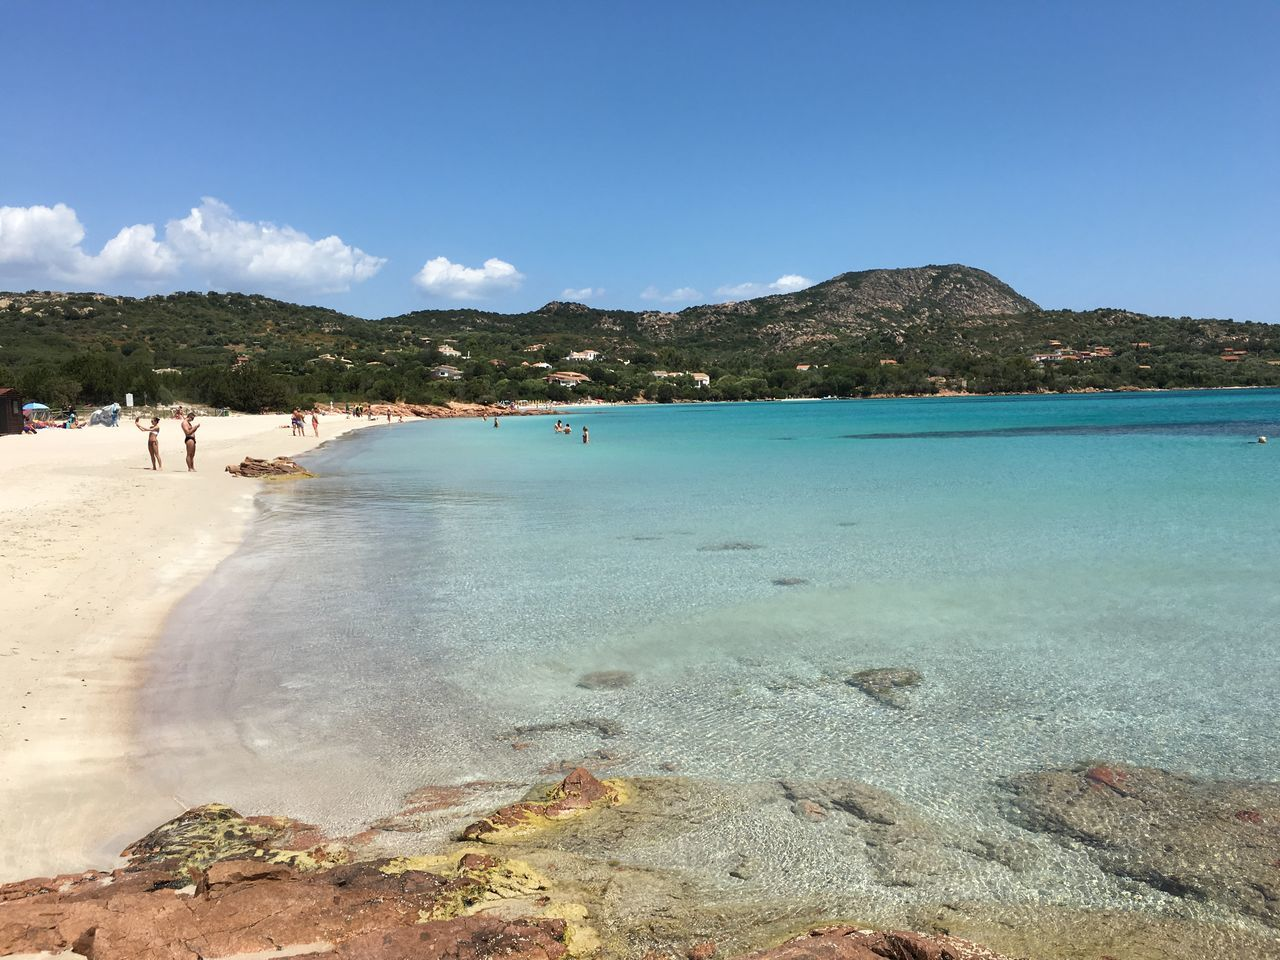 life at the beach Amazing Bay Beach Beauty In Nature Blue Water Coastline Crystal Clear Waters Island Islandlife Landscape Mare Nature Outdoors Sand Sardegna Scenics Sea Sky Summer Tranquility Travel Destinations Water